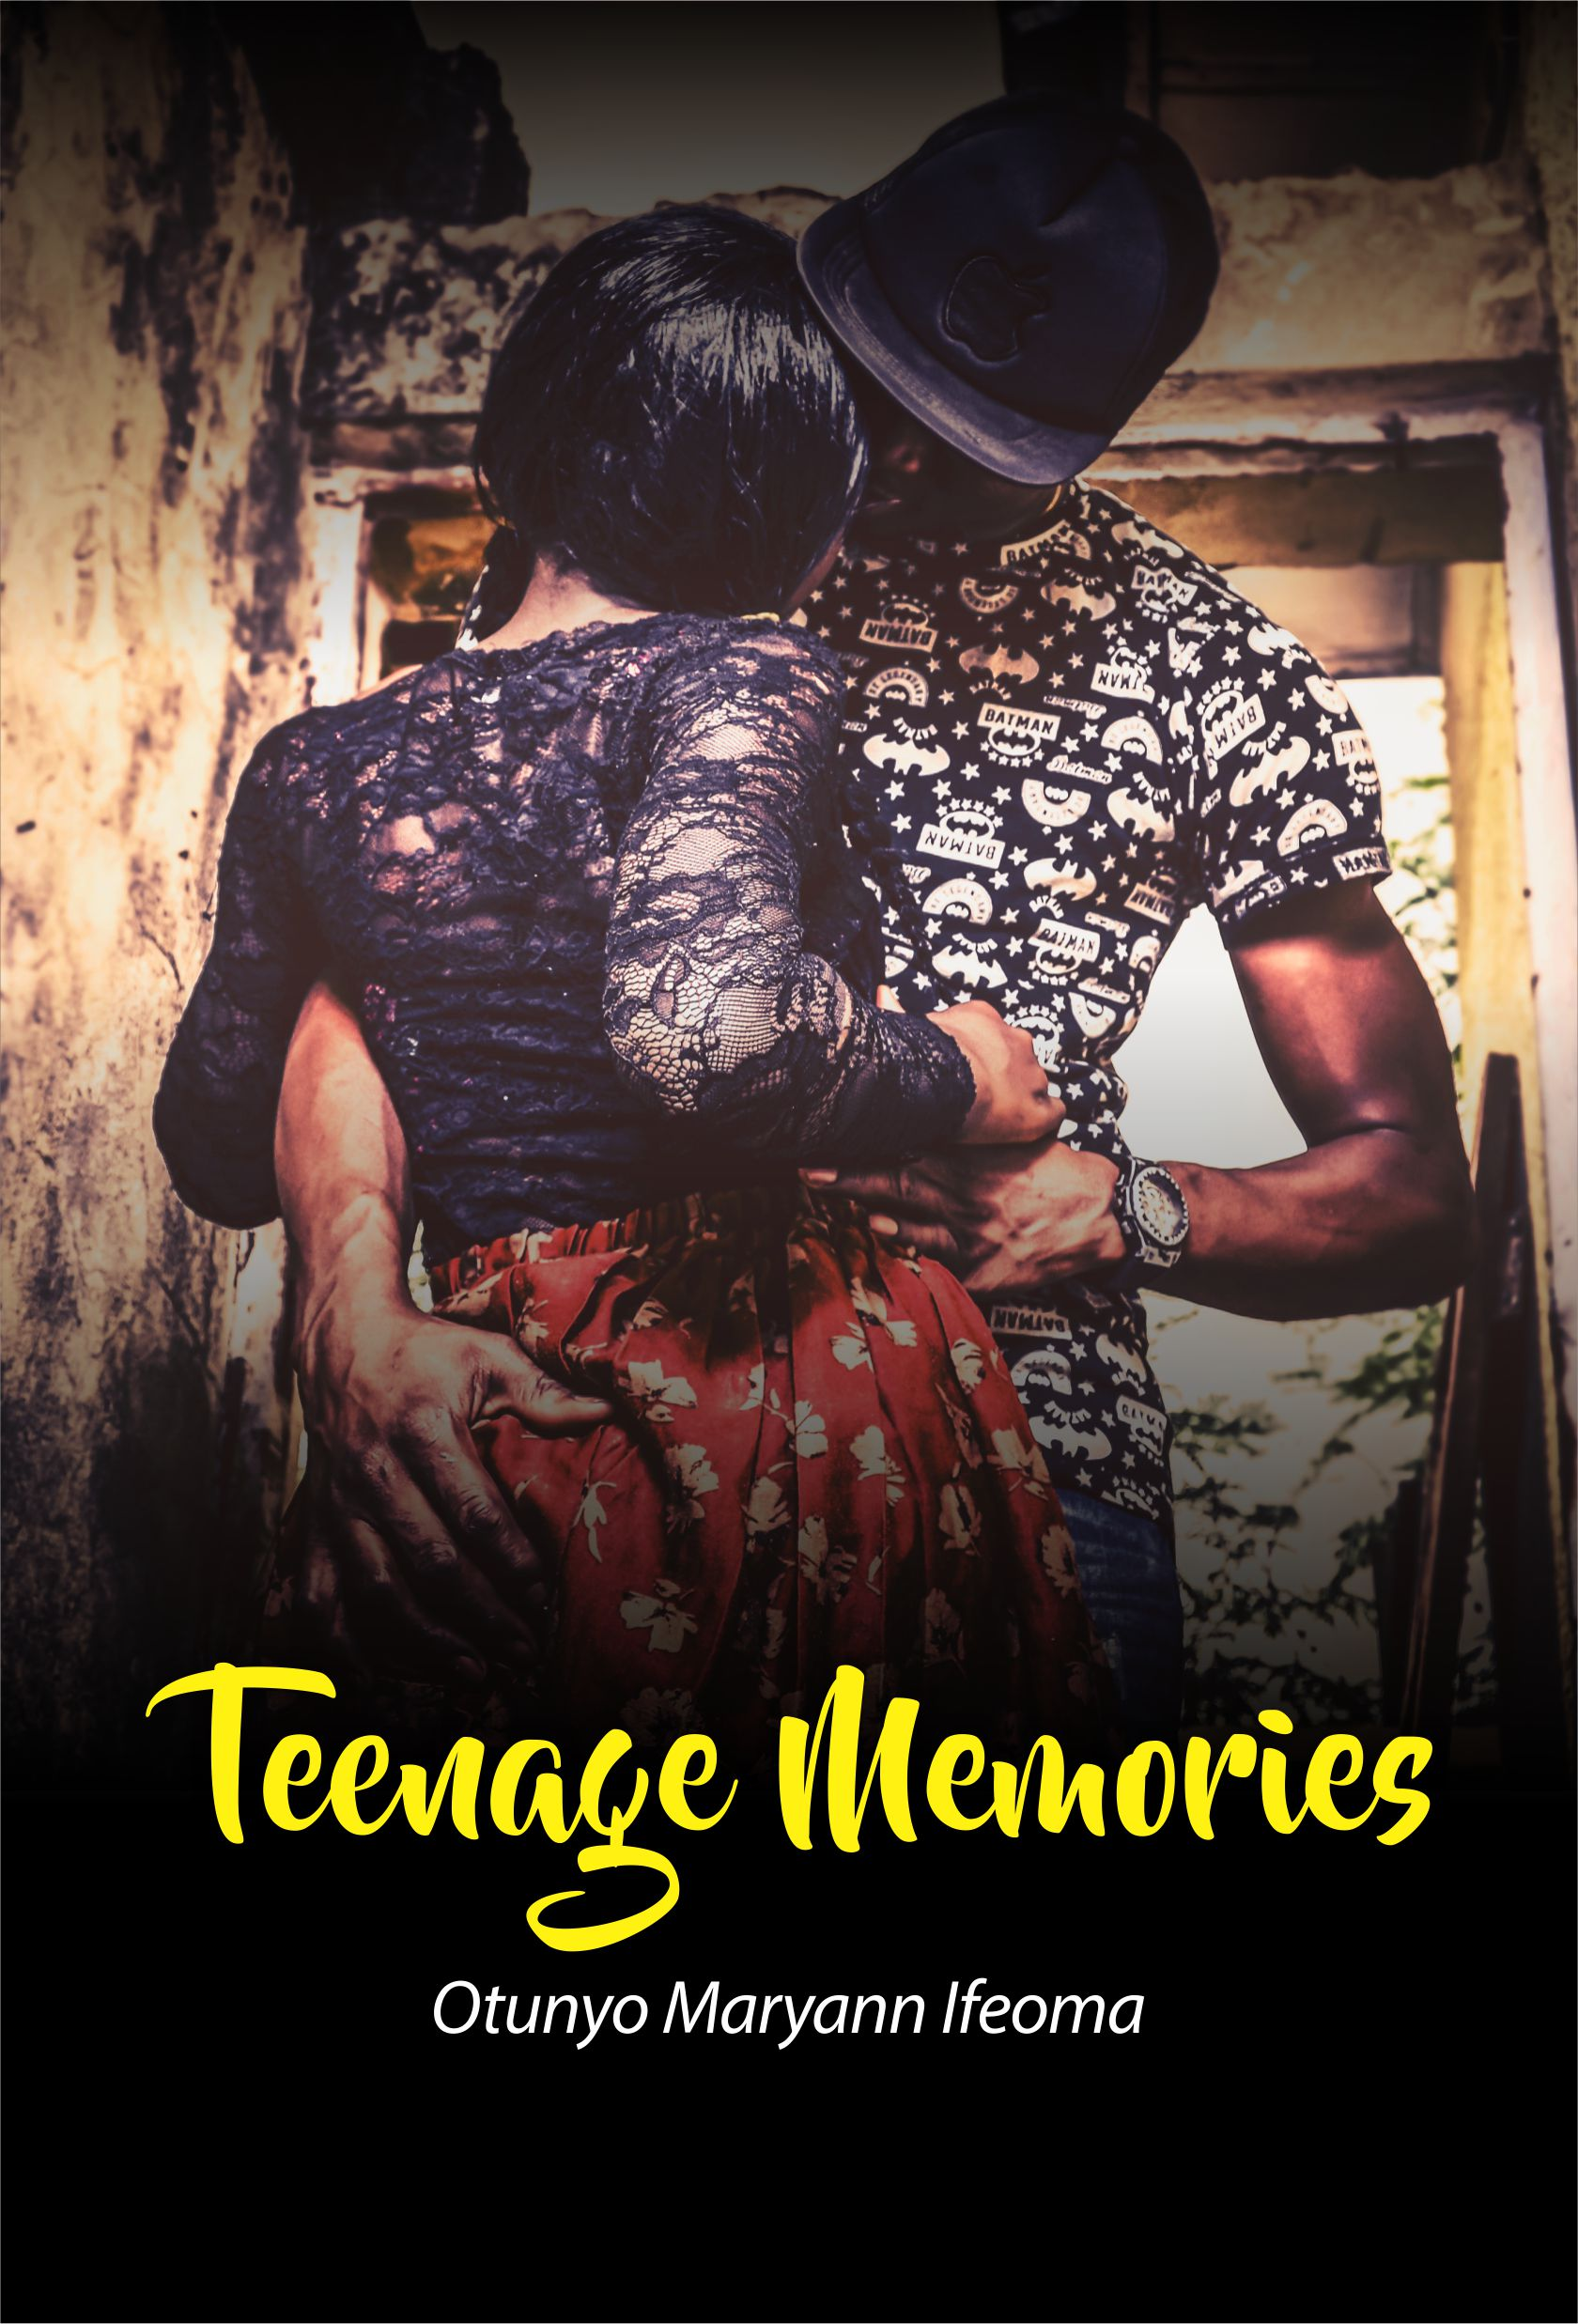 Teenage Memories - Episode 2 (Author: Otunyo Maryann Ifeoma)